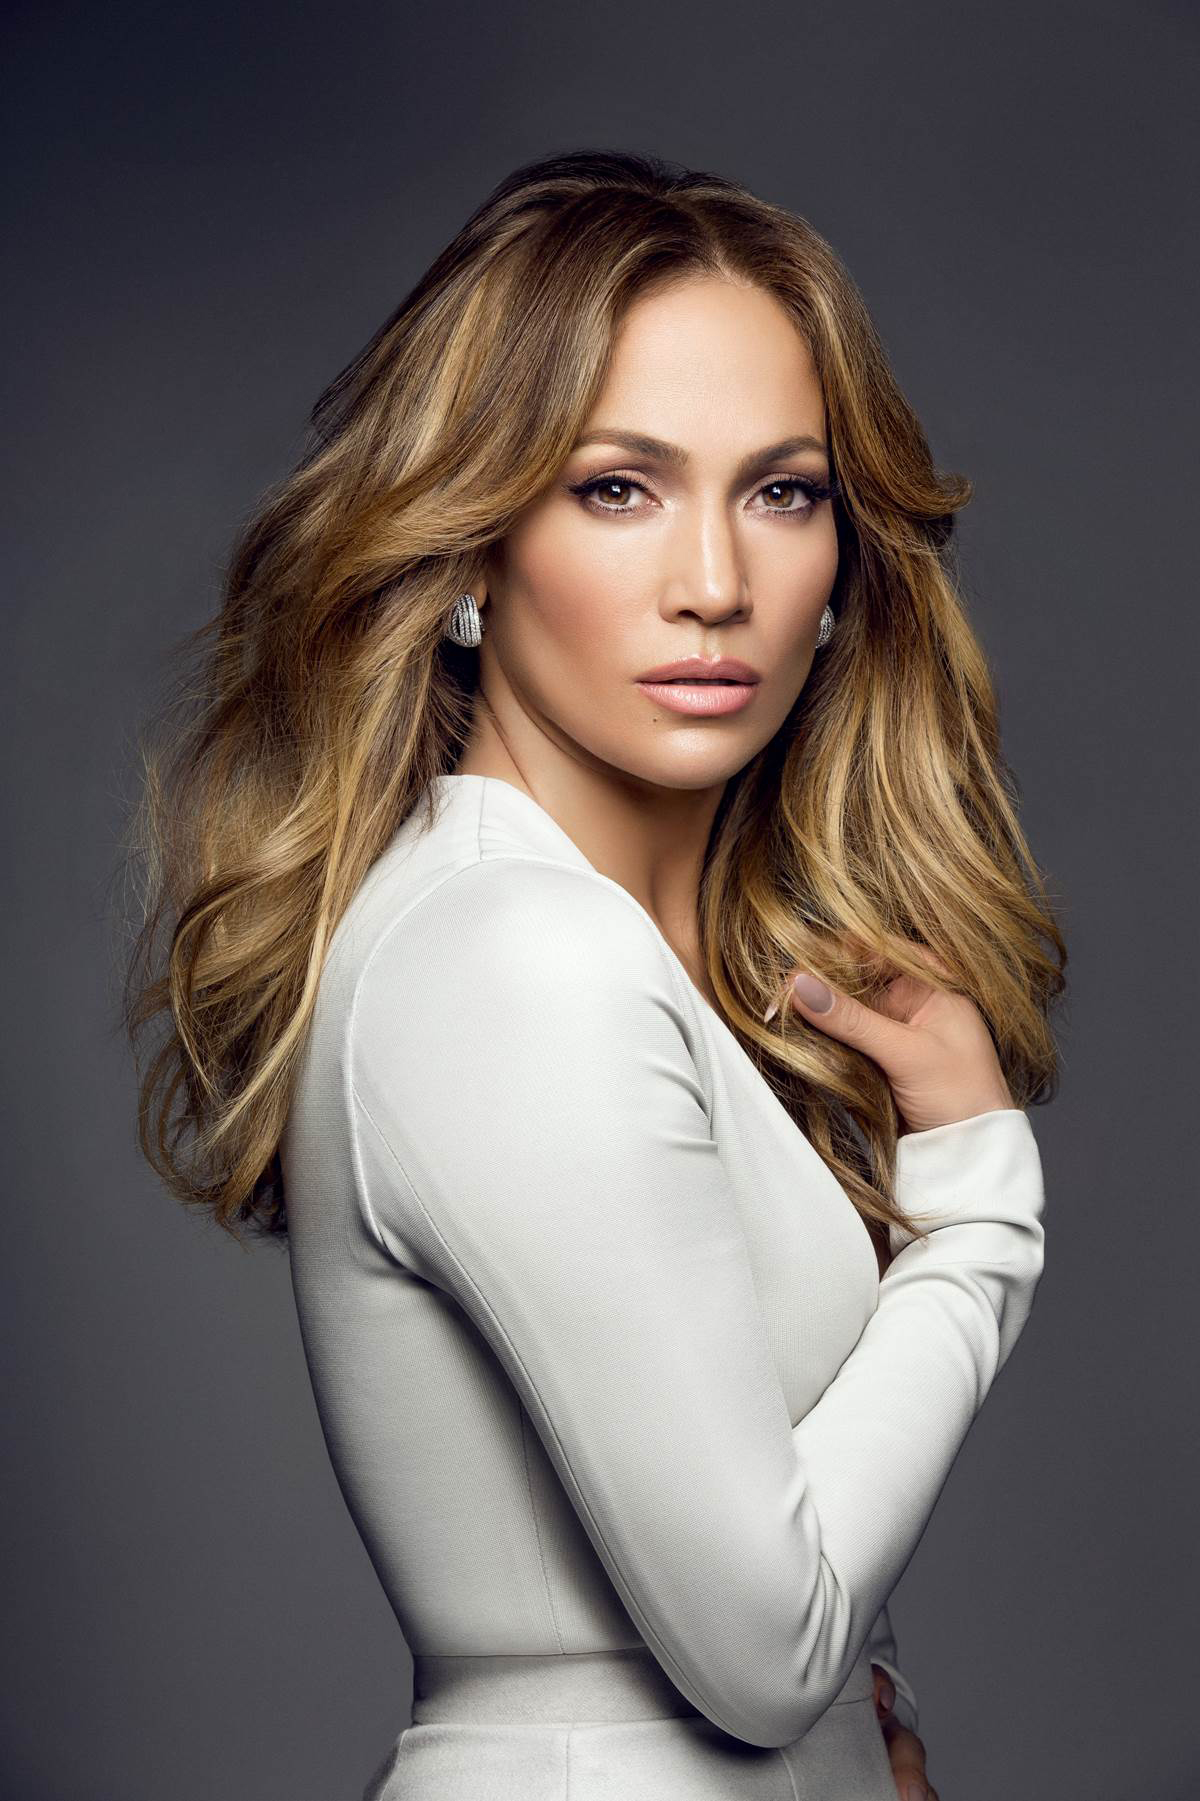 the life and music of jennifer lopez Jennifer lopez is living it up right in the music video for her latest track  a black- and-white tongue-in-cheek portrait that takes the high life to.